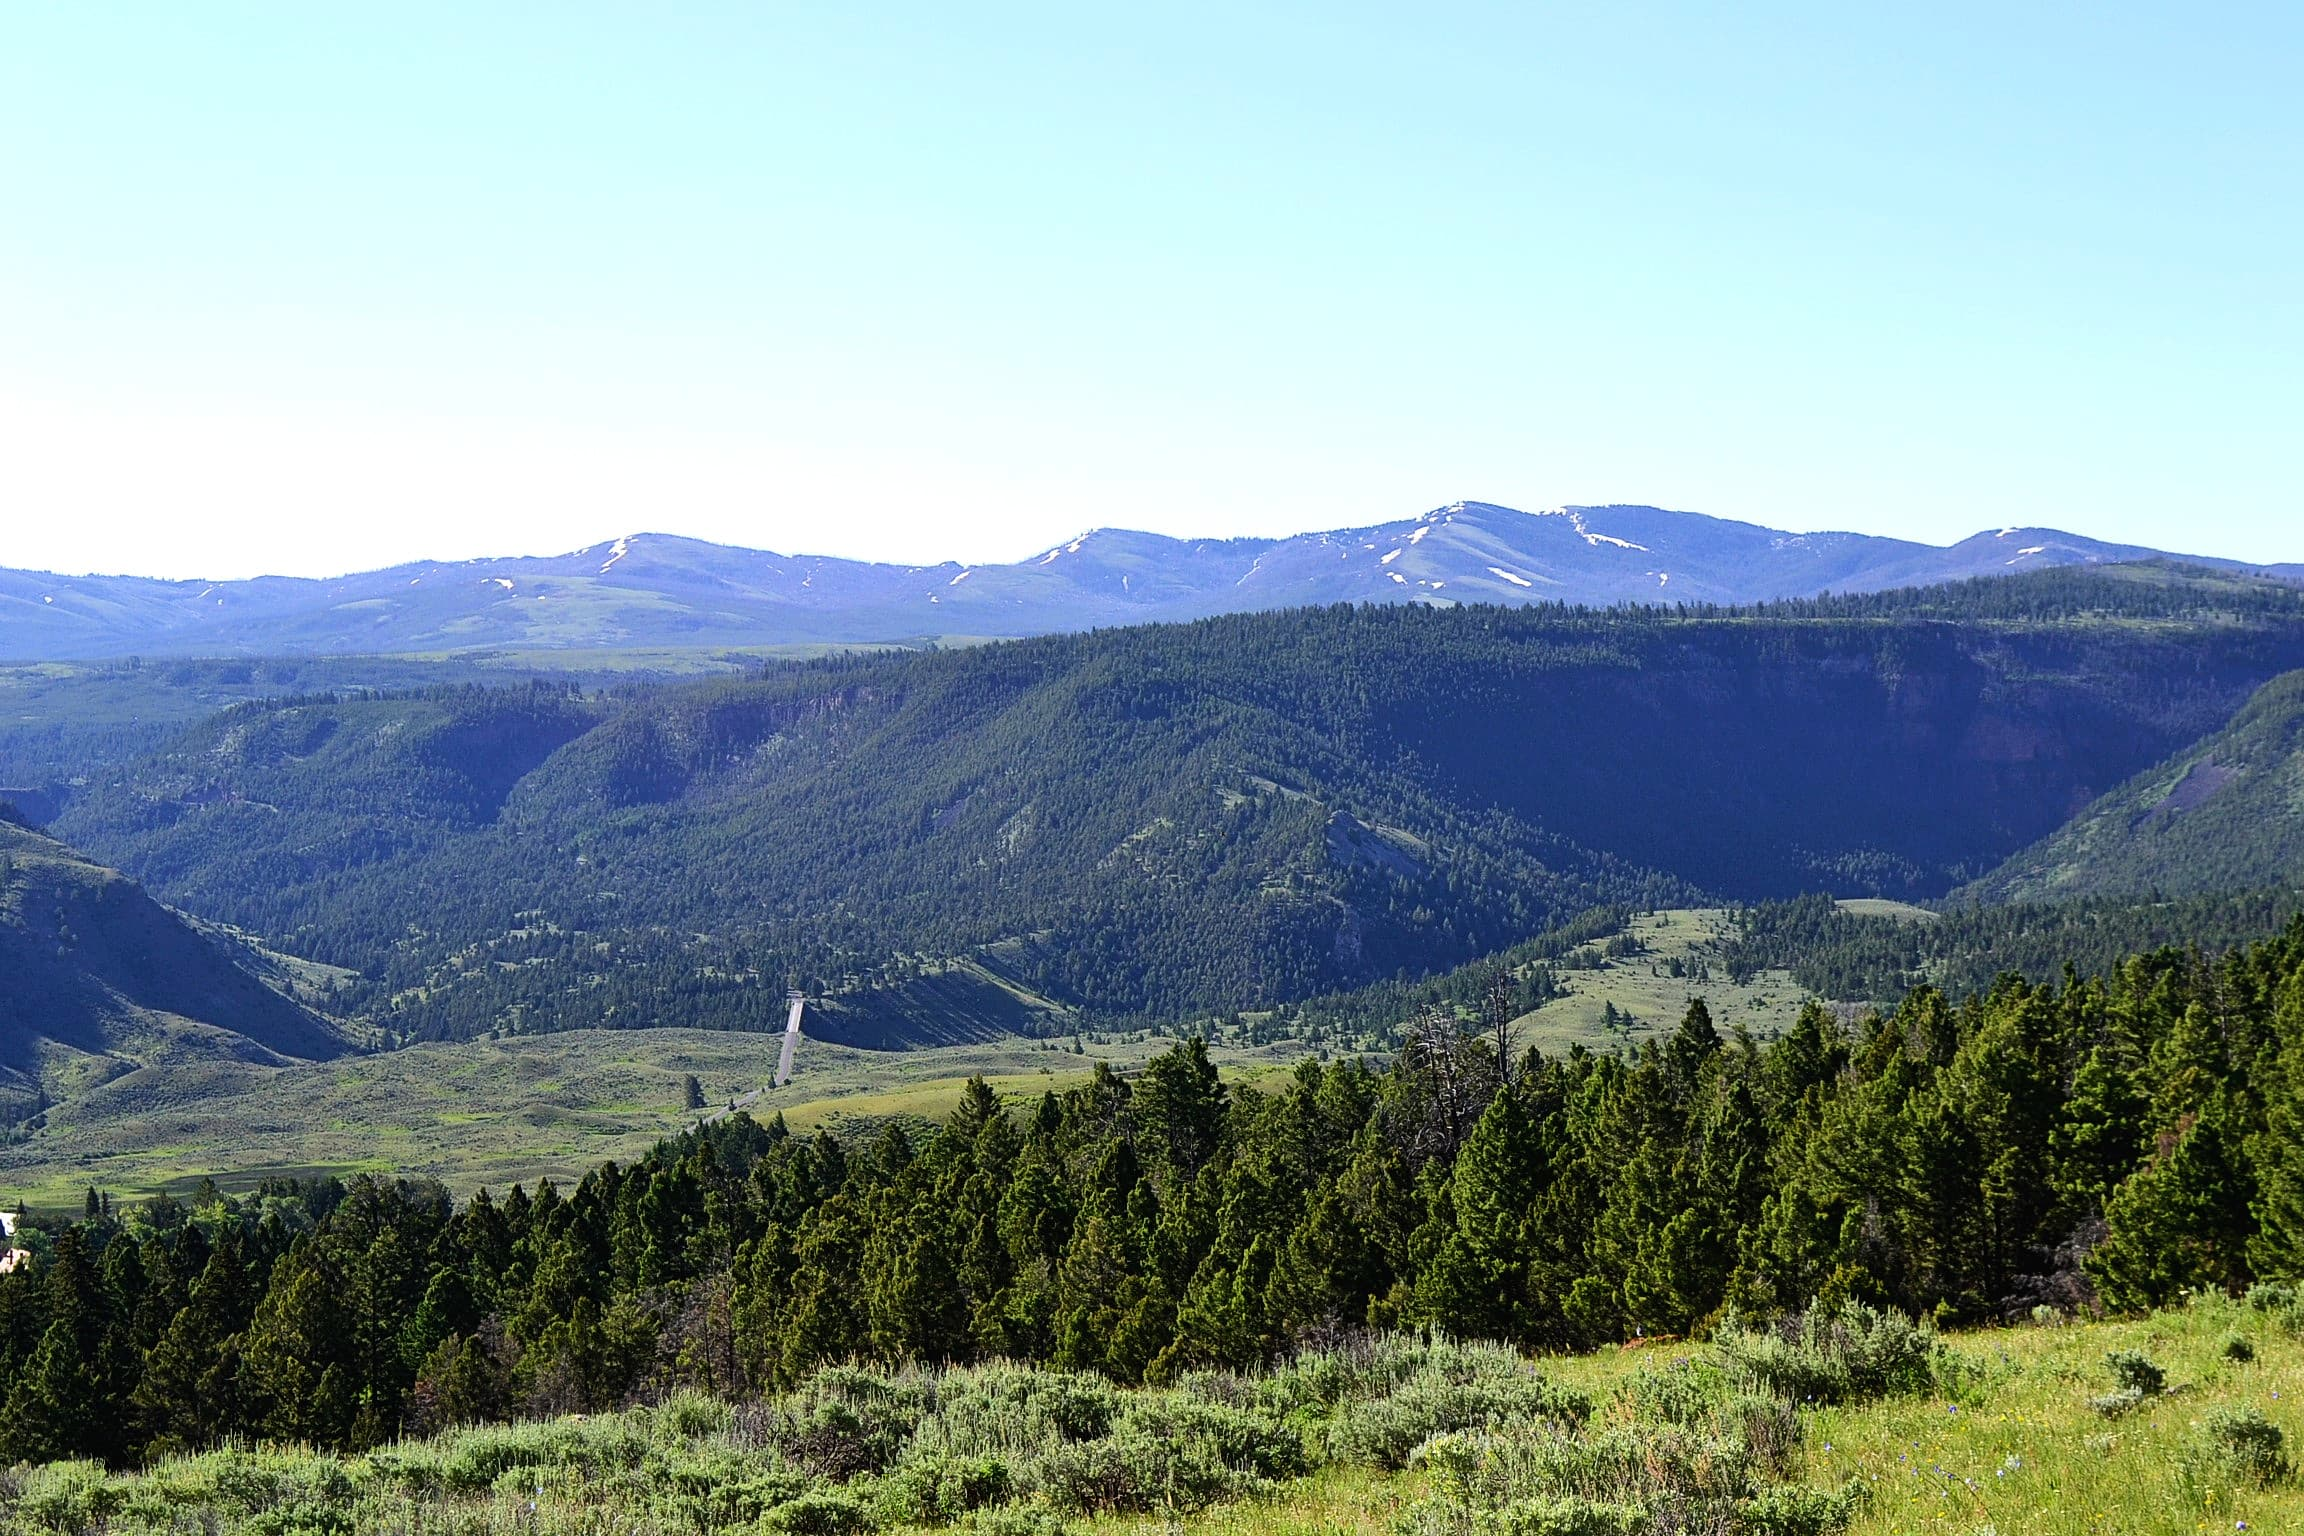 Looking north towards Montana from the trail.